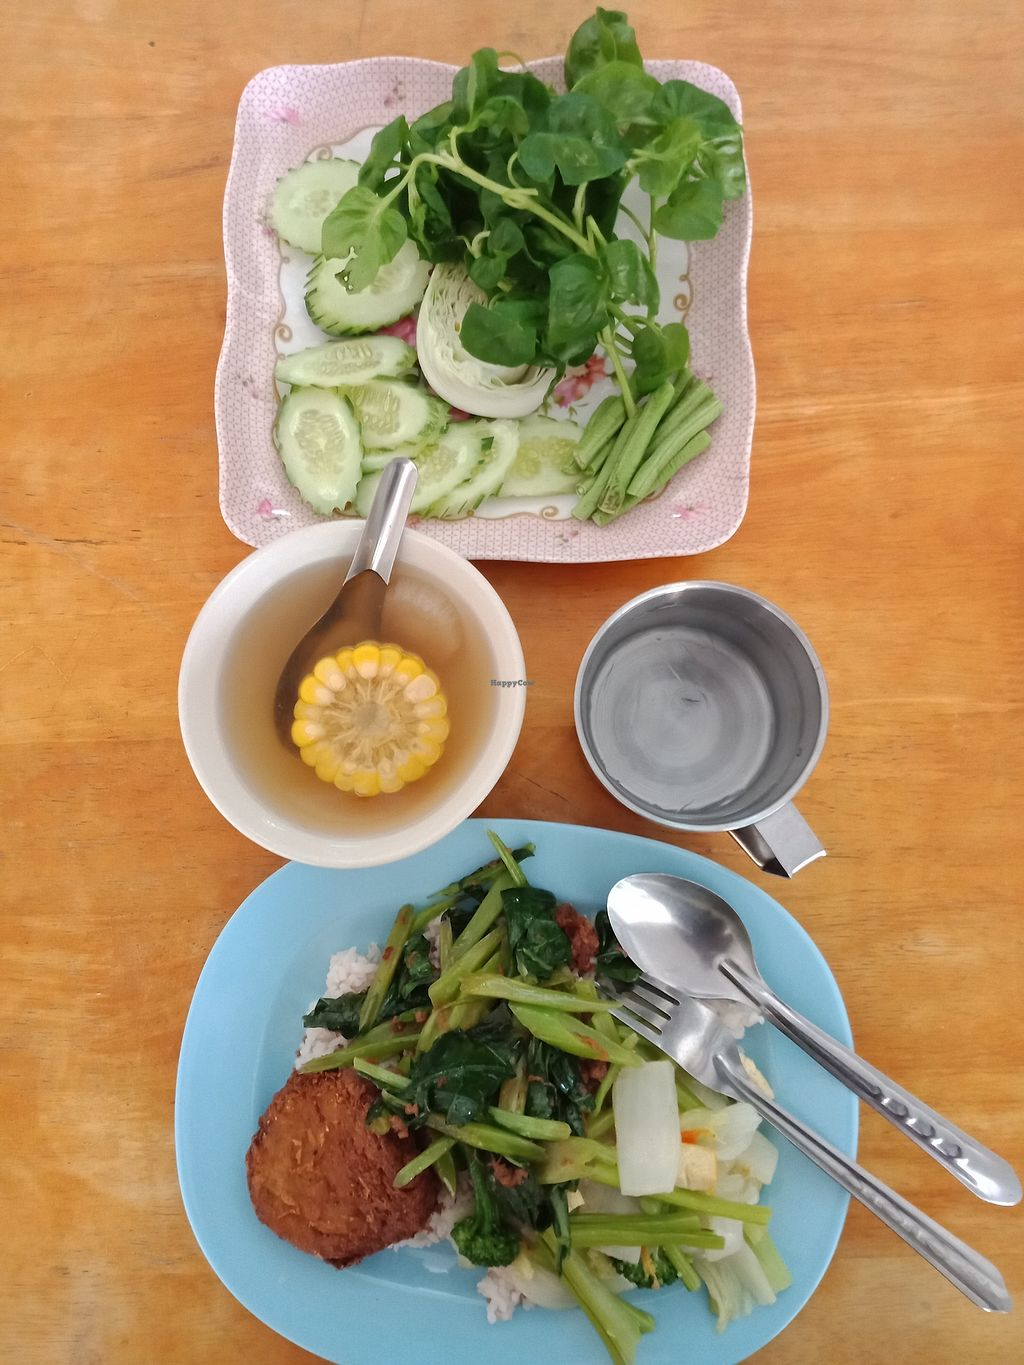 """Photo of Hongming Vegetarian Food  by <a href=""""/members/profile/GerryT"""">GerryT</a> <br/>30 baht rice and two choices, 25 baht tofu thing (+ soup + water + salad for free) <br/> March 8, 2018  - <a href='/contact/abuse/image/70471/368143'>Report</a>"""